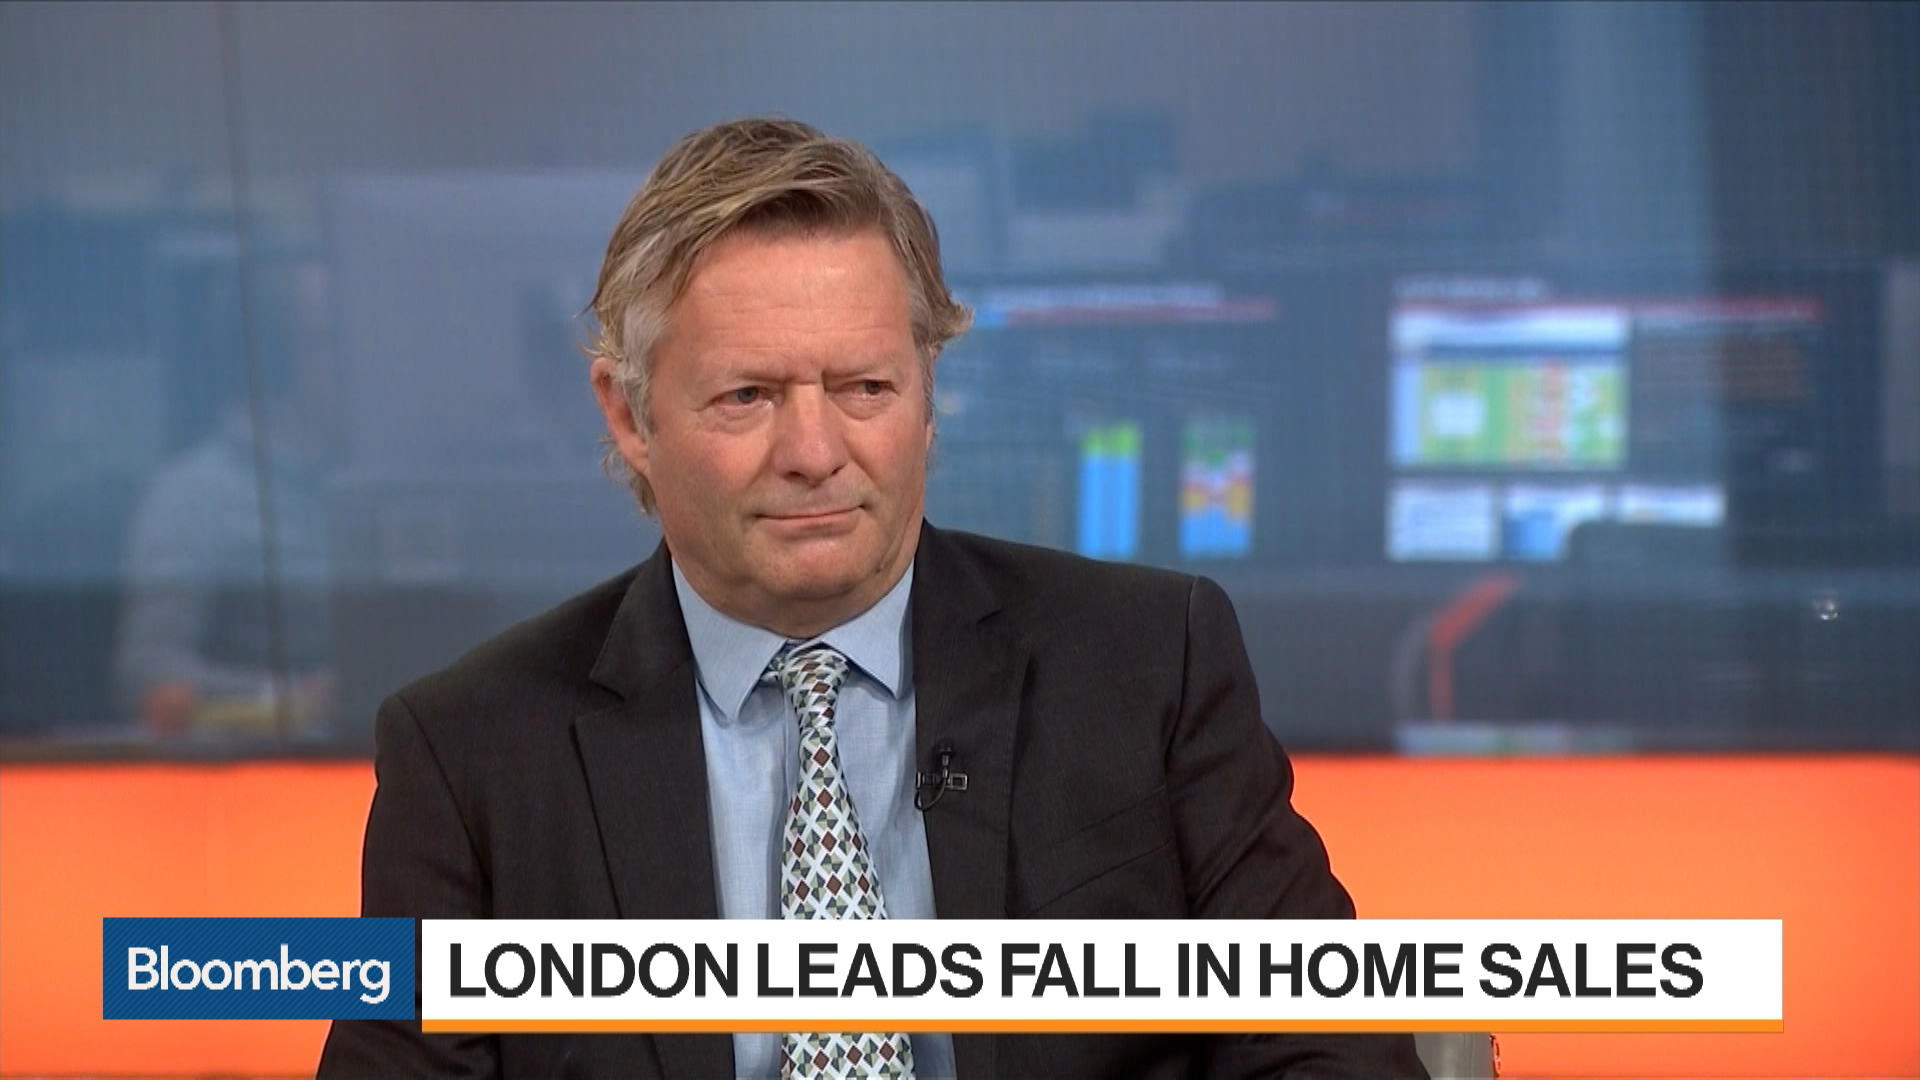 Brexit Is Weighing Factor on Housing Market, Says Rightmove's Shipside